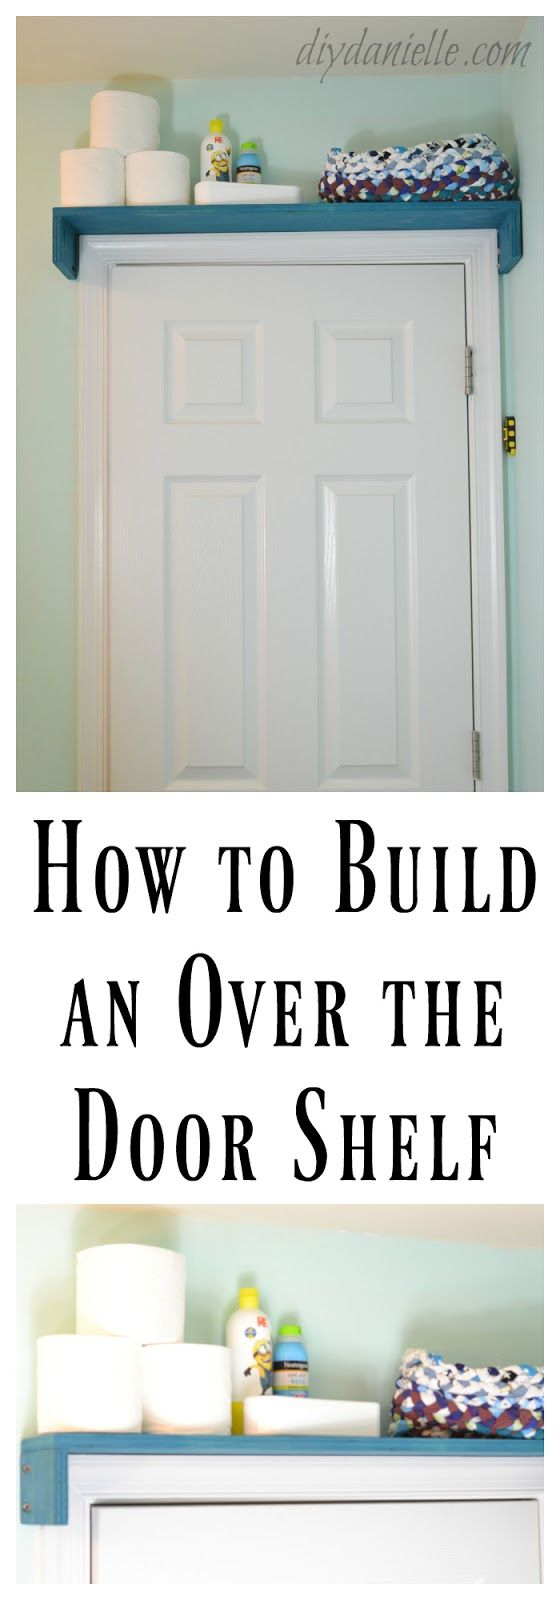 How to build a shelf for over the bathroom door to keep unsafe items away from children.